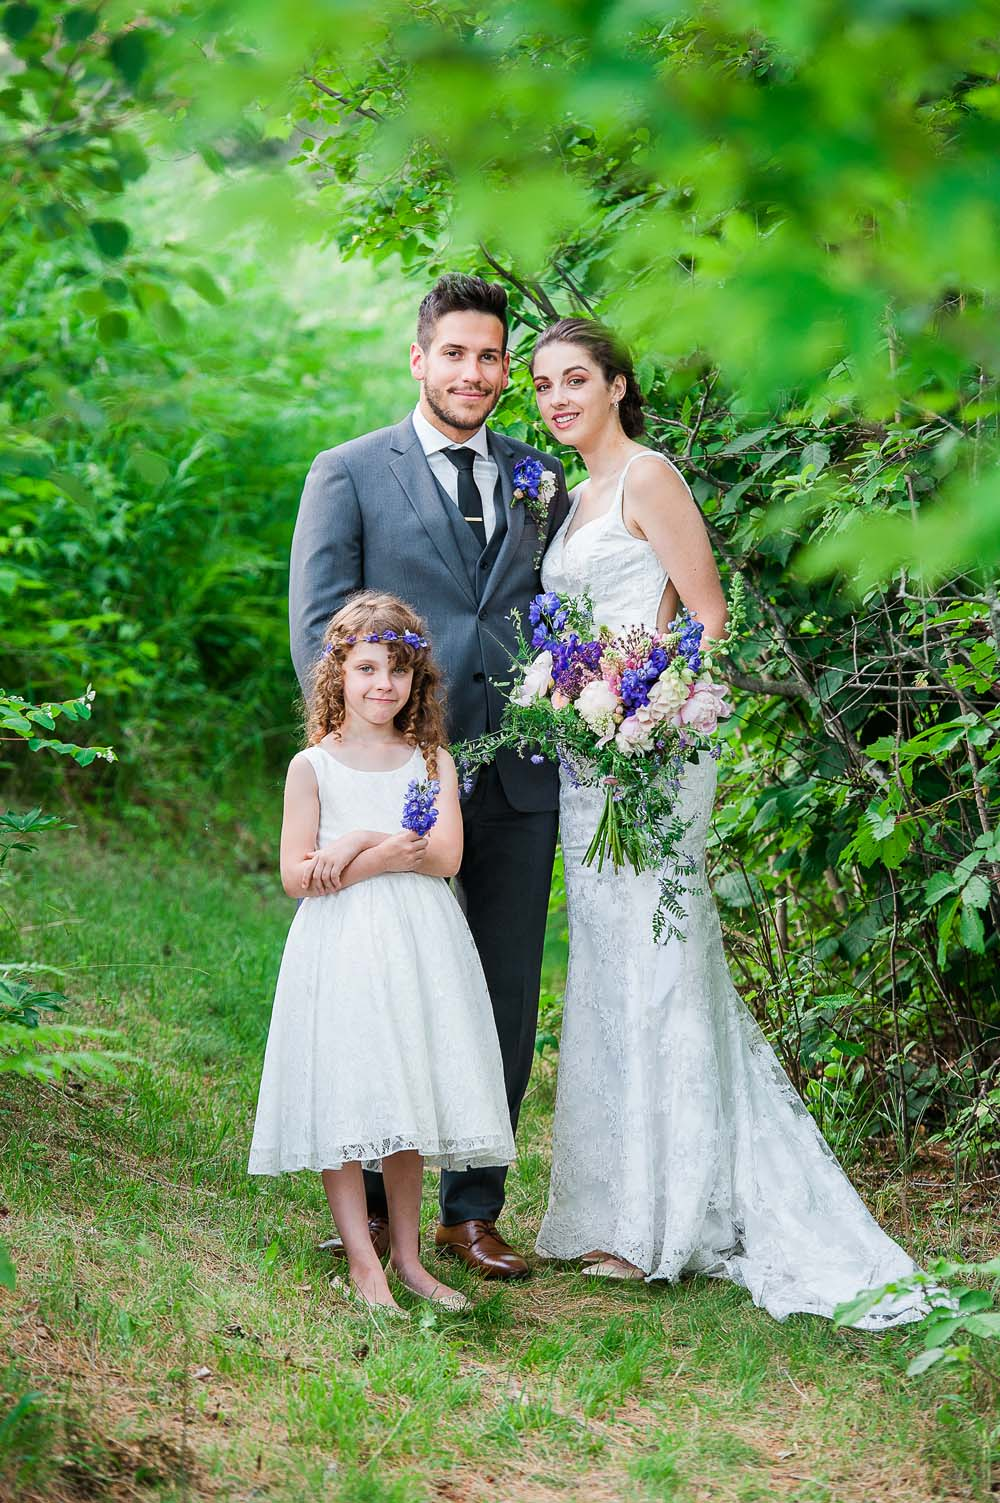 An Ultra Violet-Inspired Styled Shoot In Quebec - Bridal party